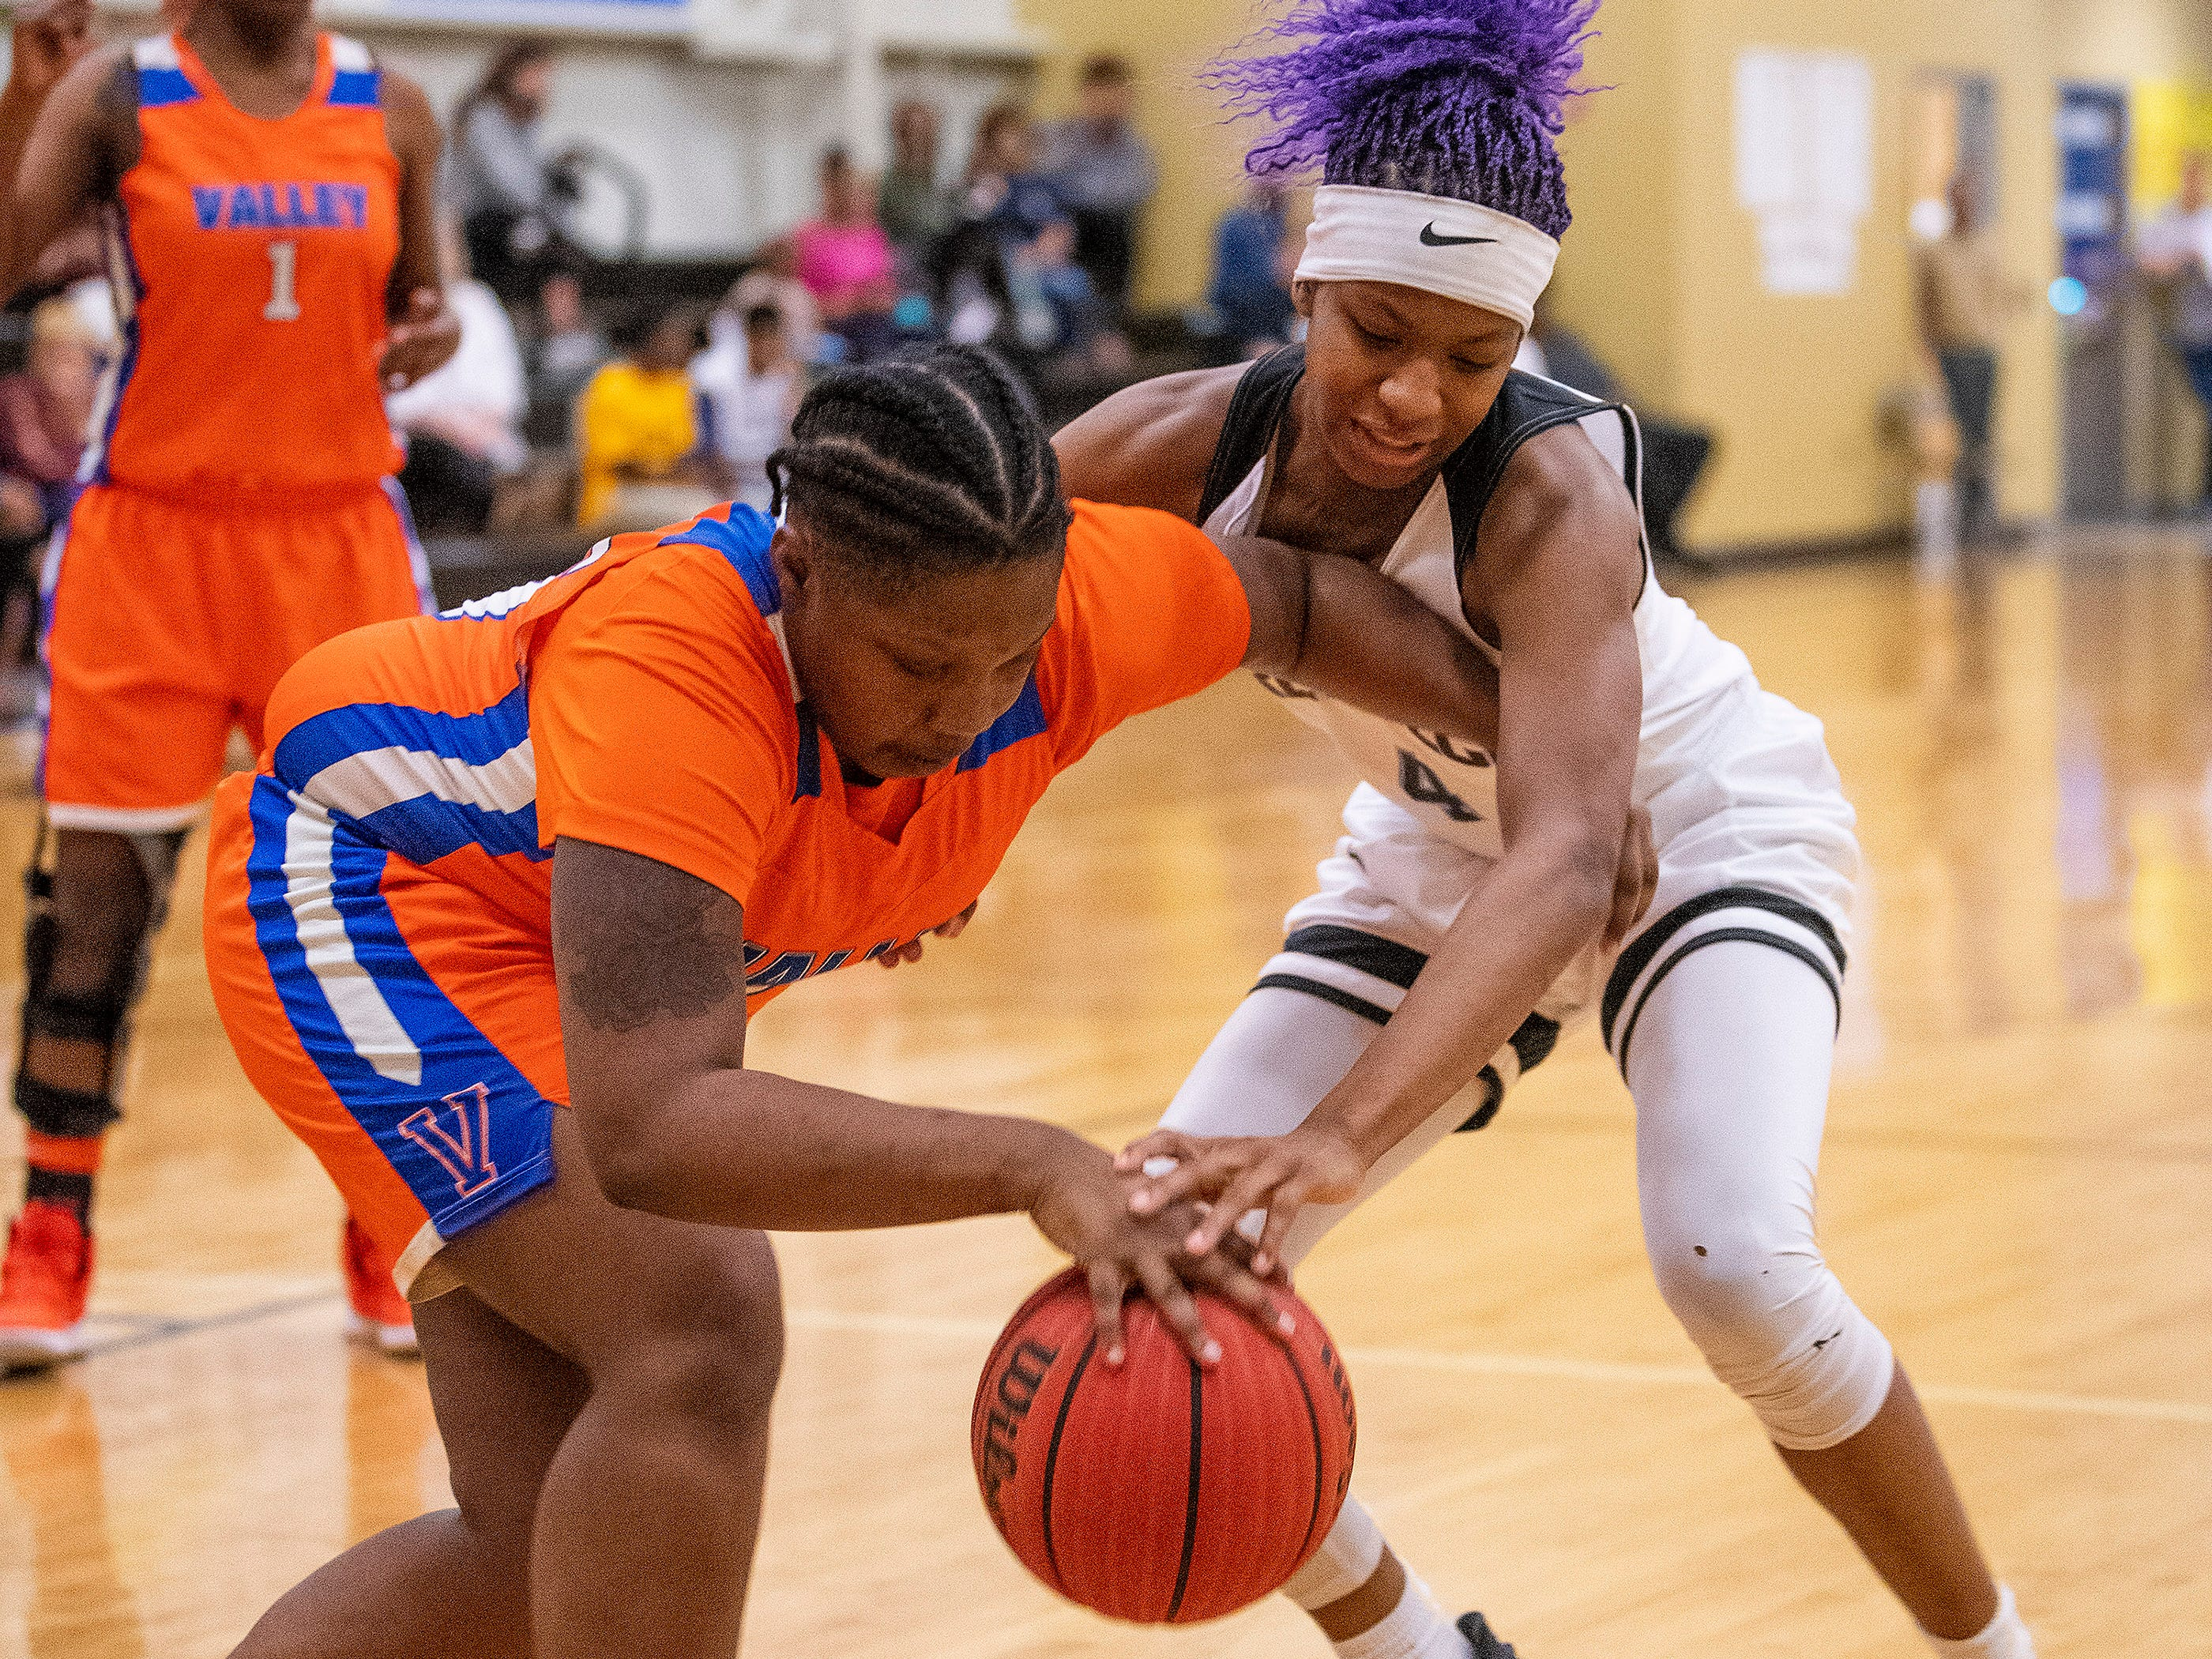 Valley's Emerald Floyd (15) and Brewbaker Tech's Skye Harris-Butler (4) go after the ball at the BrewTech campus in Montgomery, Ala., on Thursday February 7, 2019.